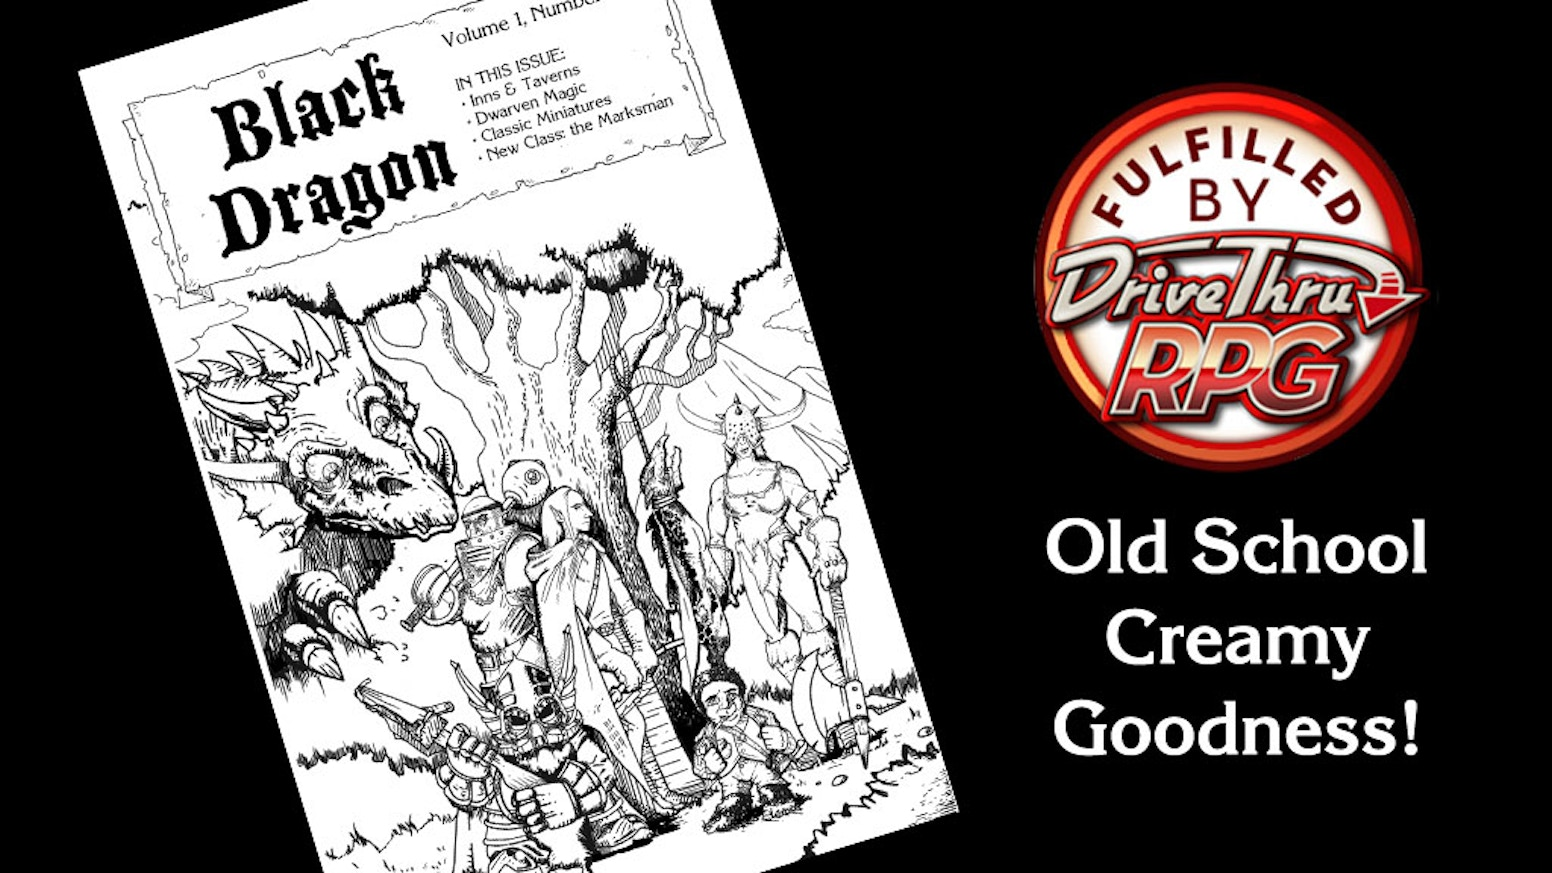 A fanzine for old school roleplaying games, included Advanced D&D, B/X, Labyrinth Lord, Swords & Wizardry, OSRIC, and For Gold & Glory.